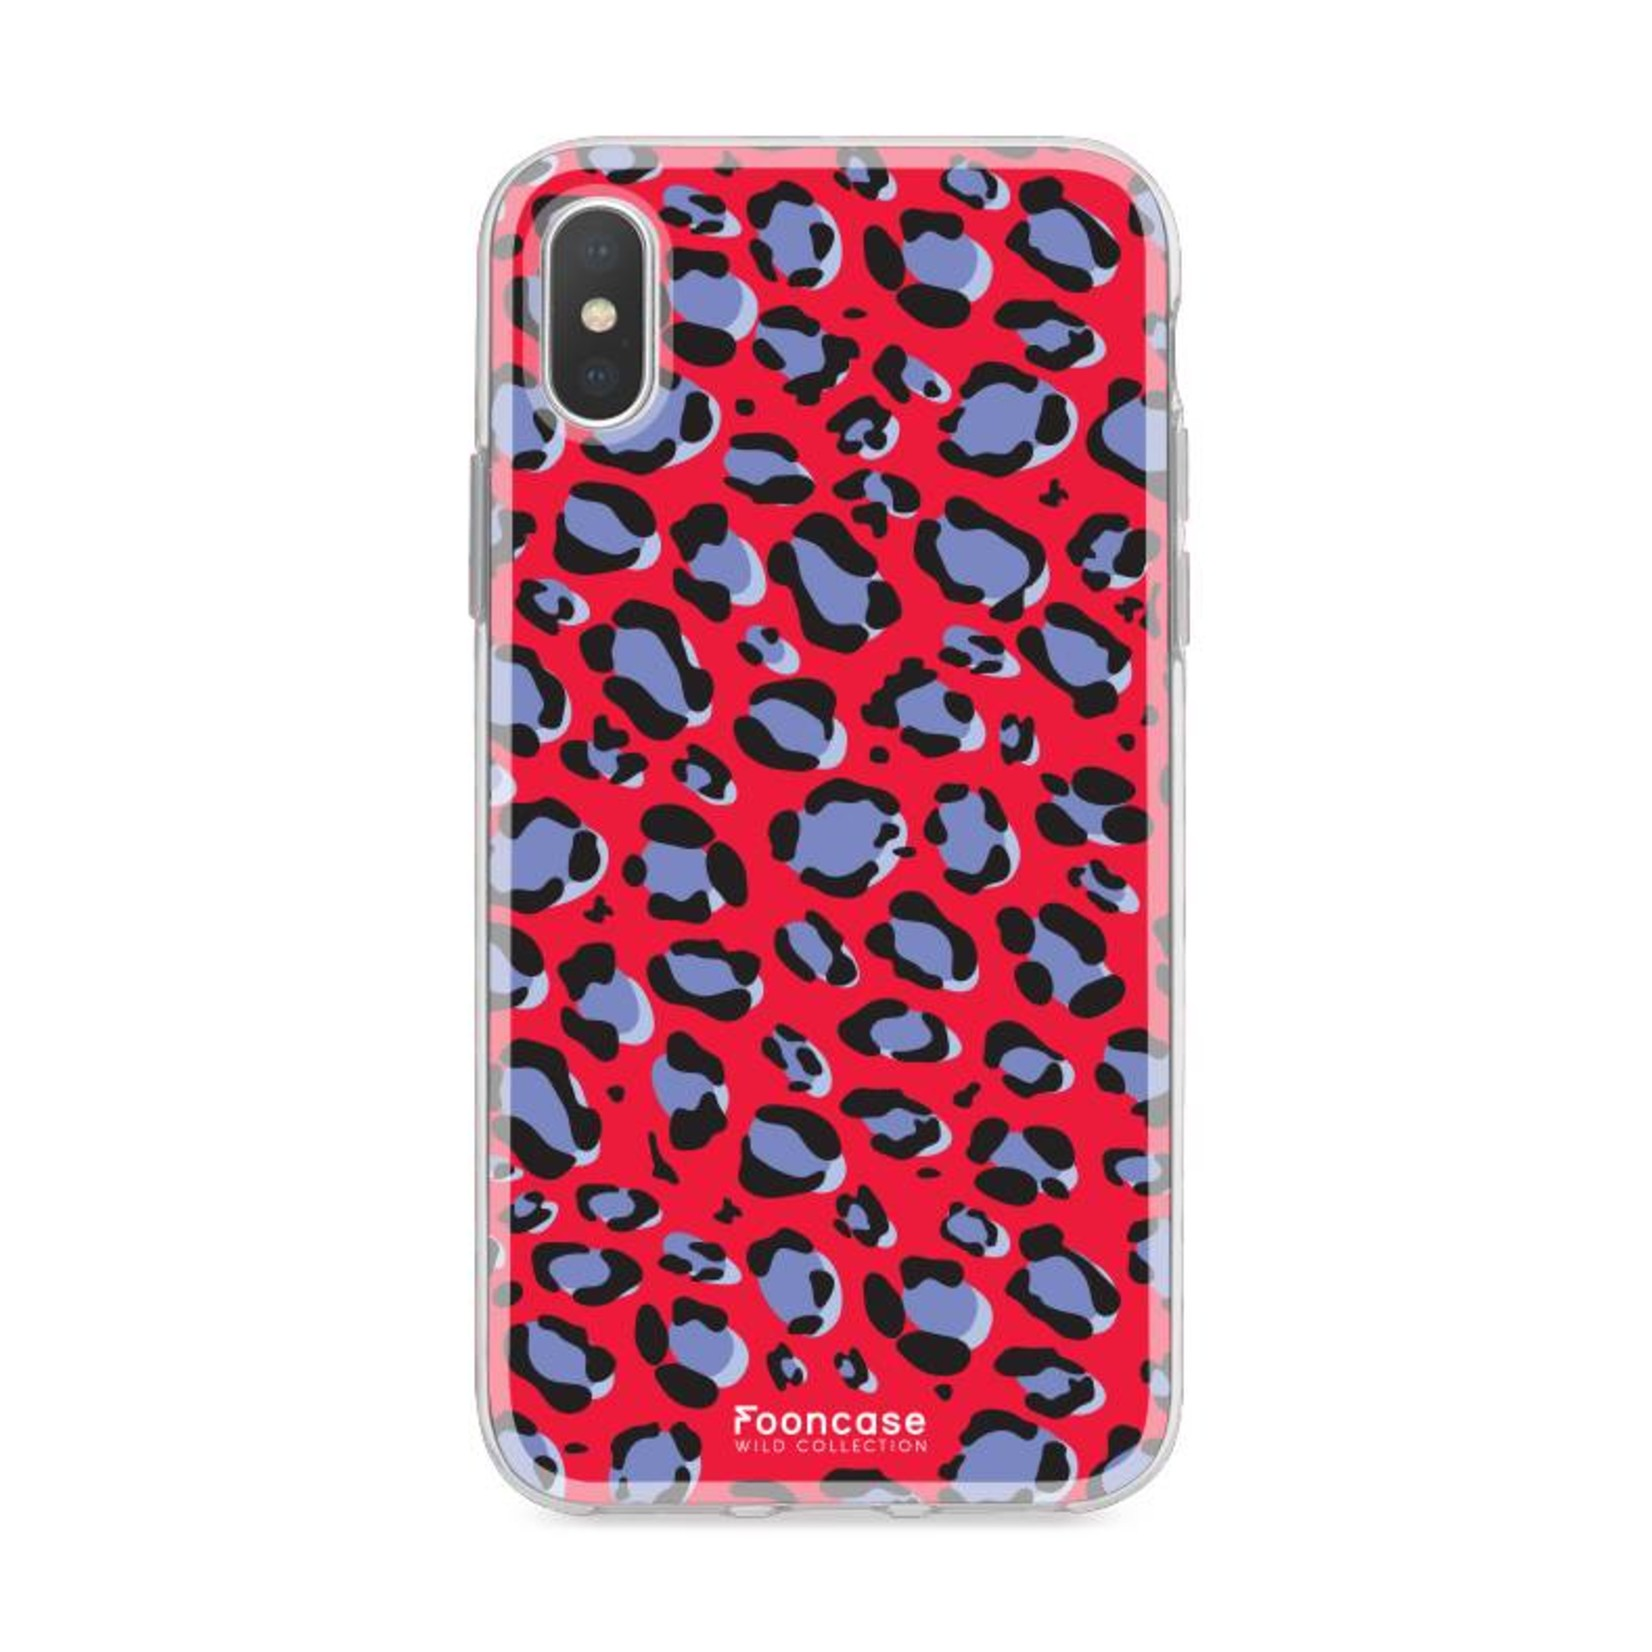 FOONCASE iPhone XS Max hoesje TPU Soft Case - Back Cover - WILD COLLECTION / Luipaard / Leopard print / Rood